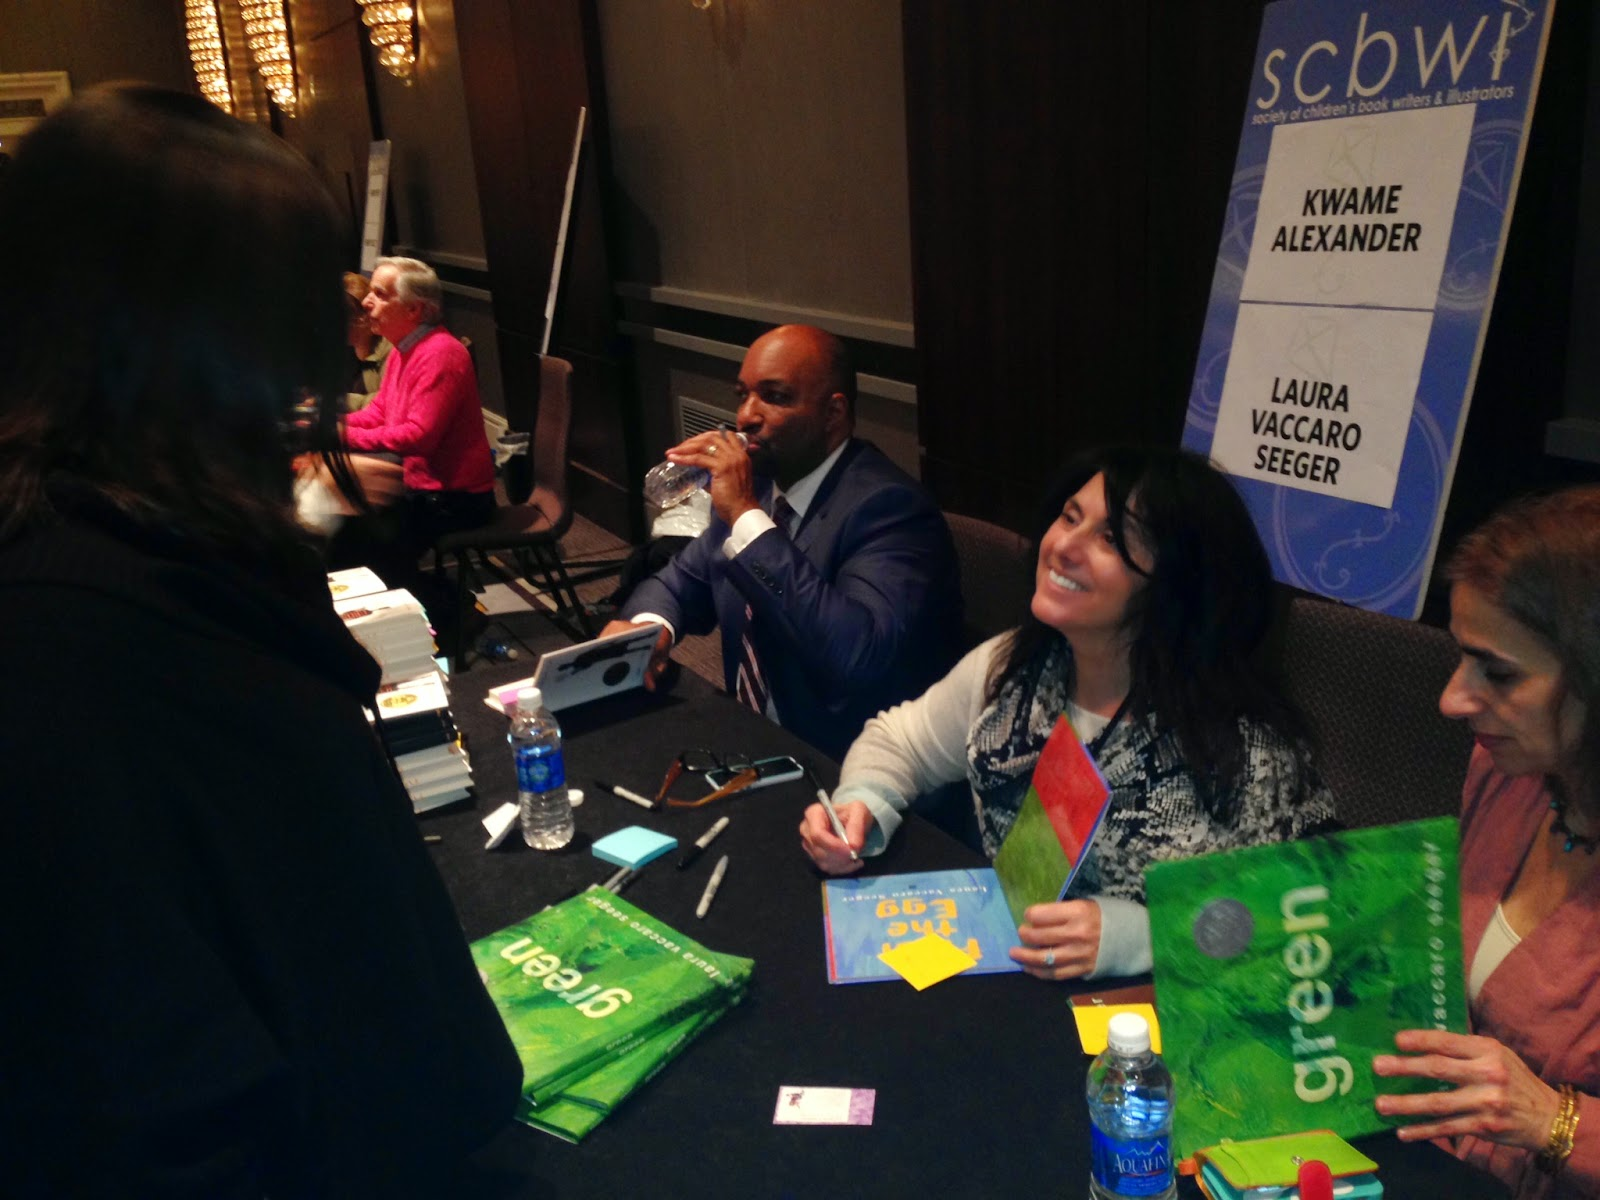 And here's another photo including Kwame Alexander (this year's Newbery winner), and The Fonz! And my best friend, Judes (far right).